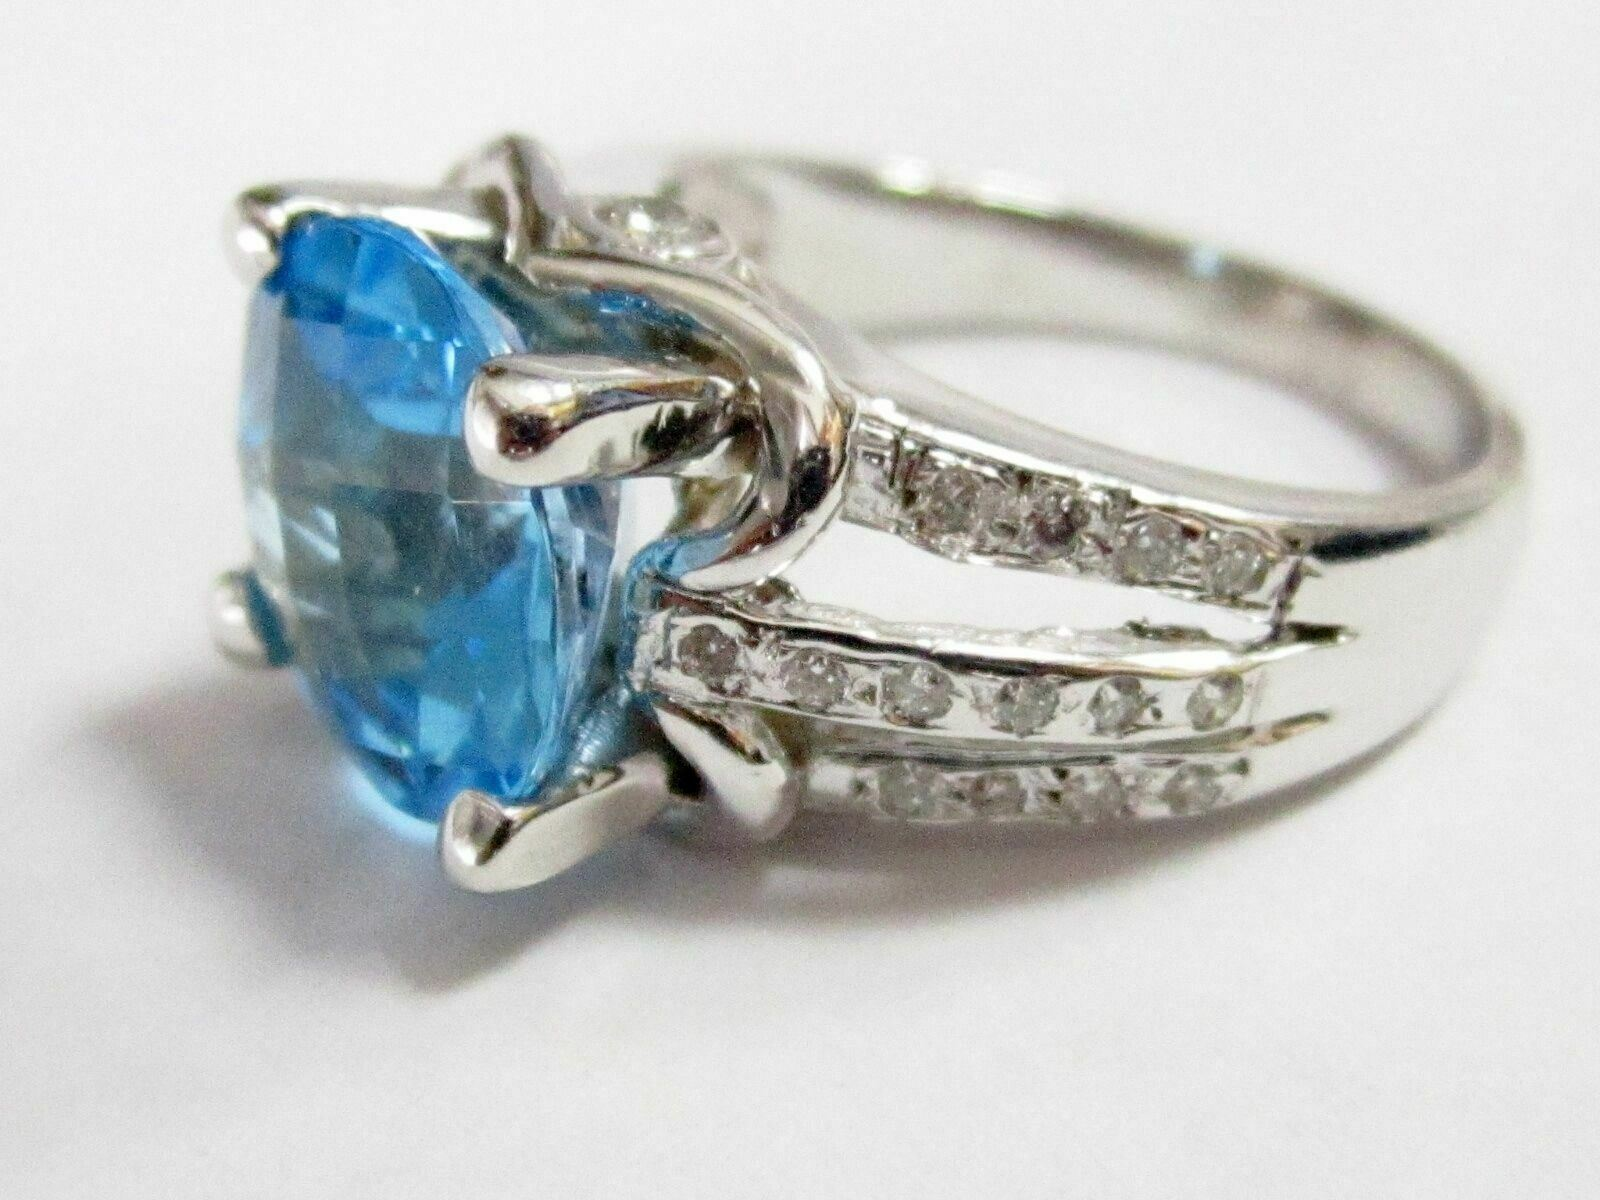 5.55 TCW Natural Round Blue Topaz & Diamond Ring Size 7 G SI-1 14k White Gold